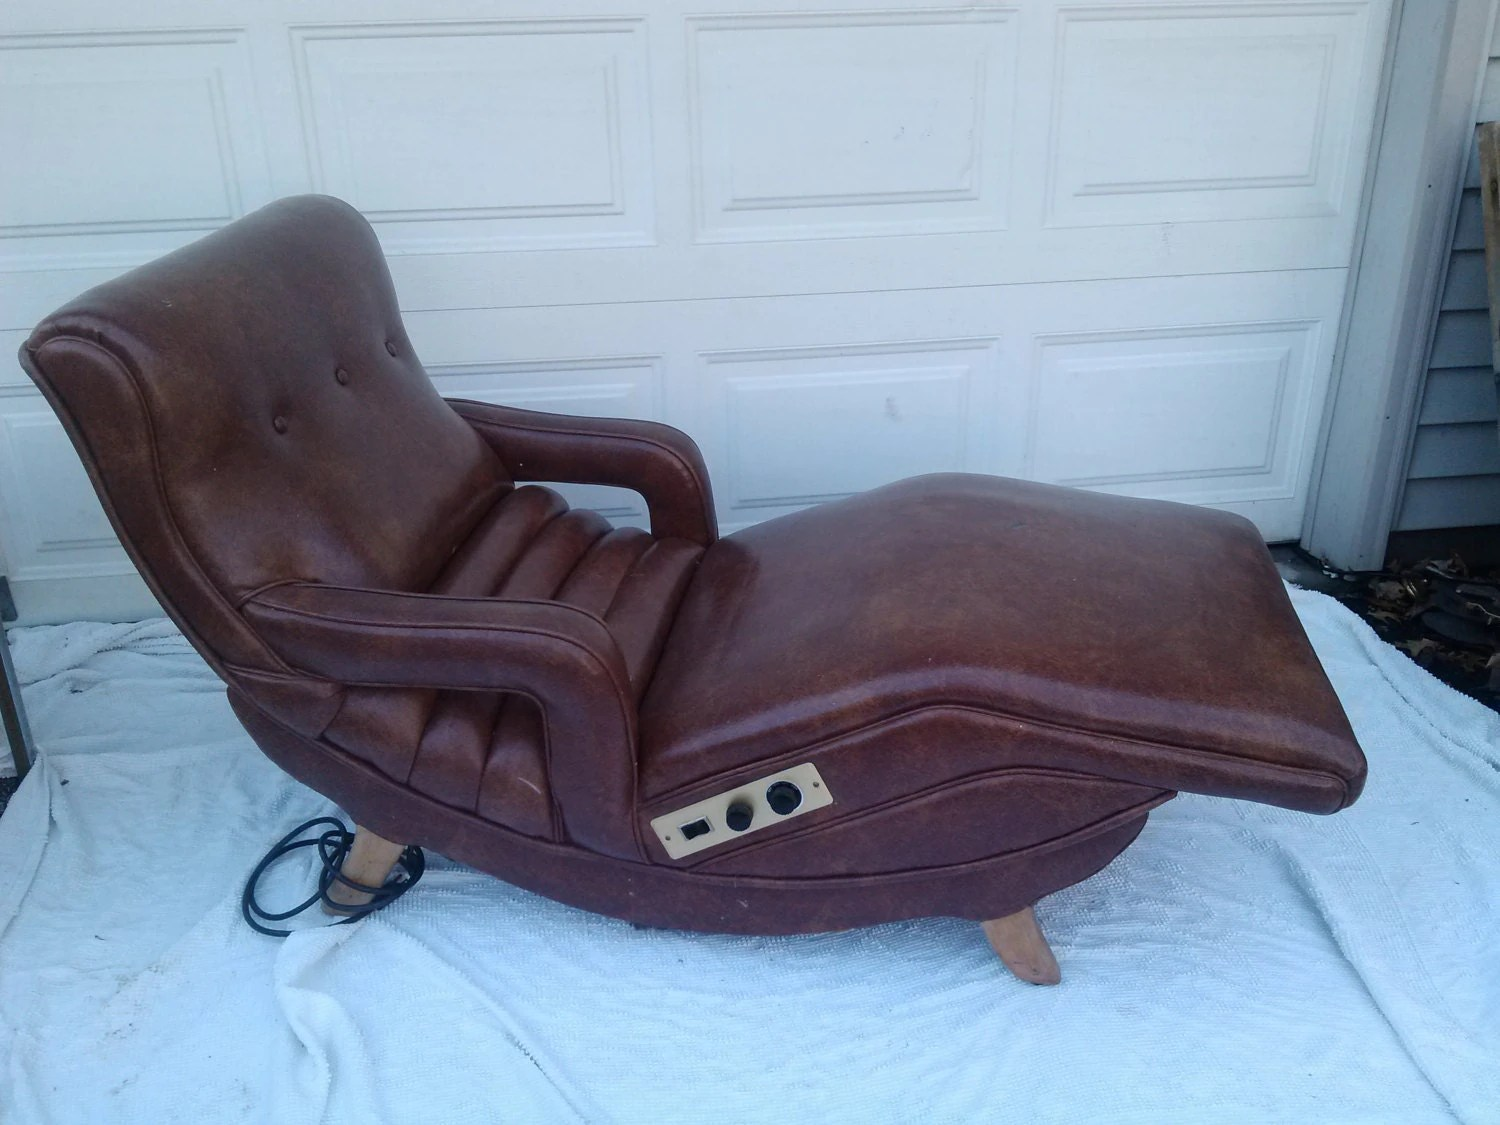 Contour Chair Lounge Vintage Mid Century Original Contour Vibrating Lounge Chair 1960s